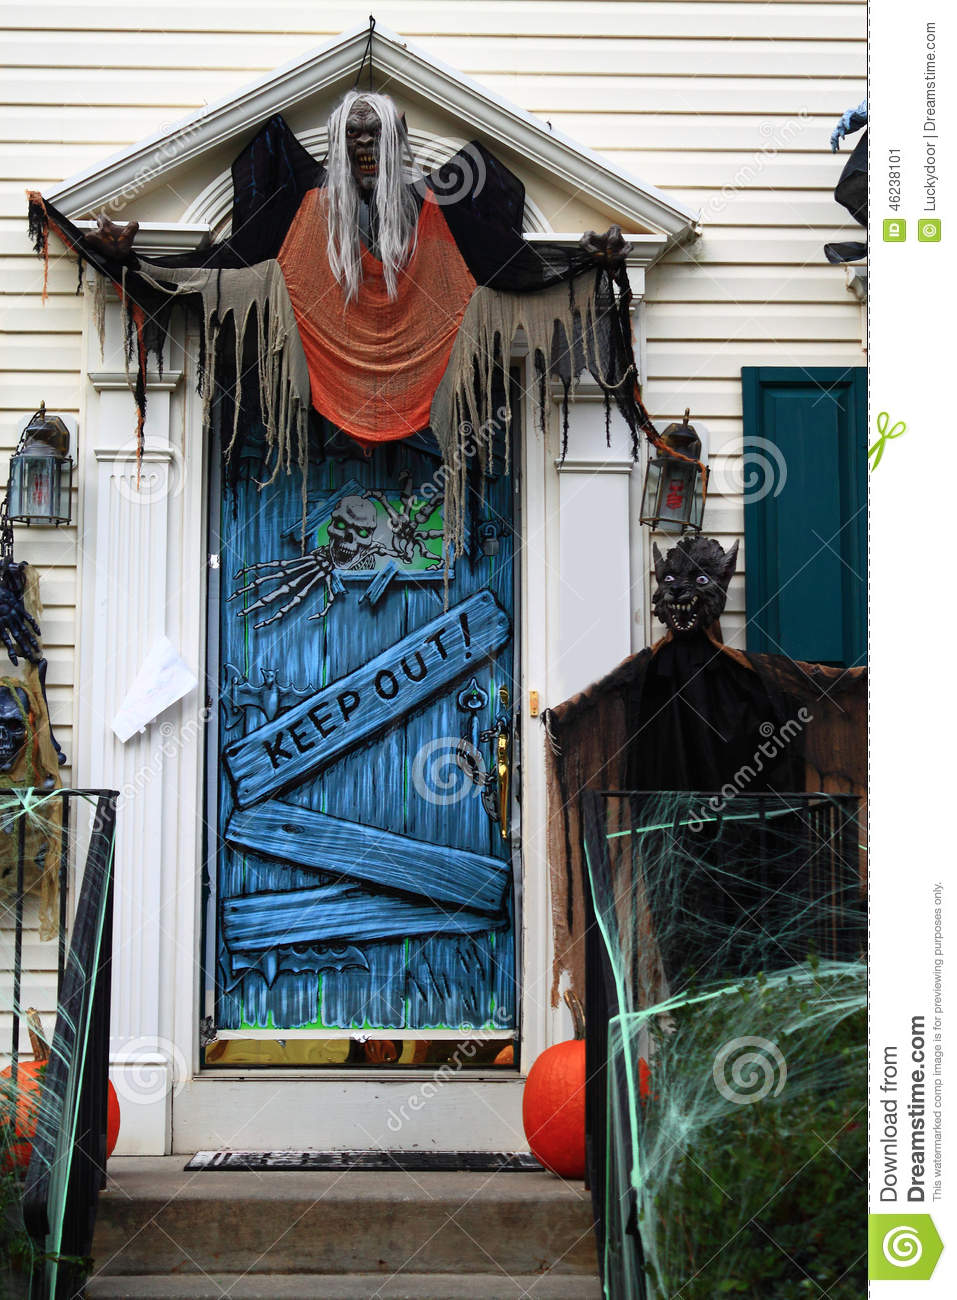 Decorazione a halloween immagine stock immagine di for Decorazione be u